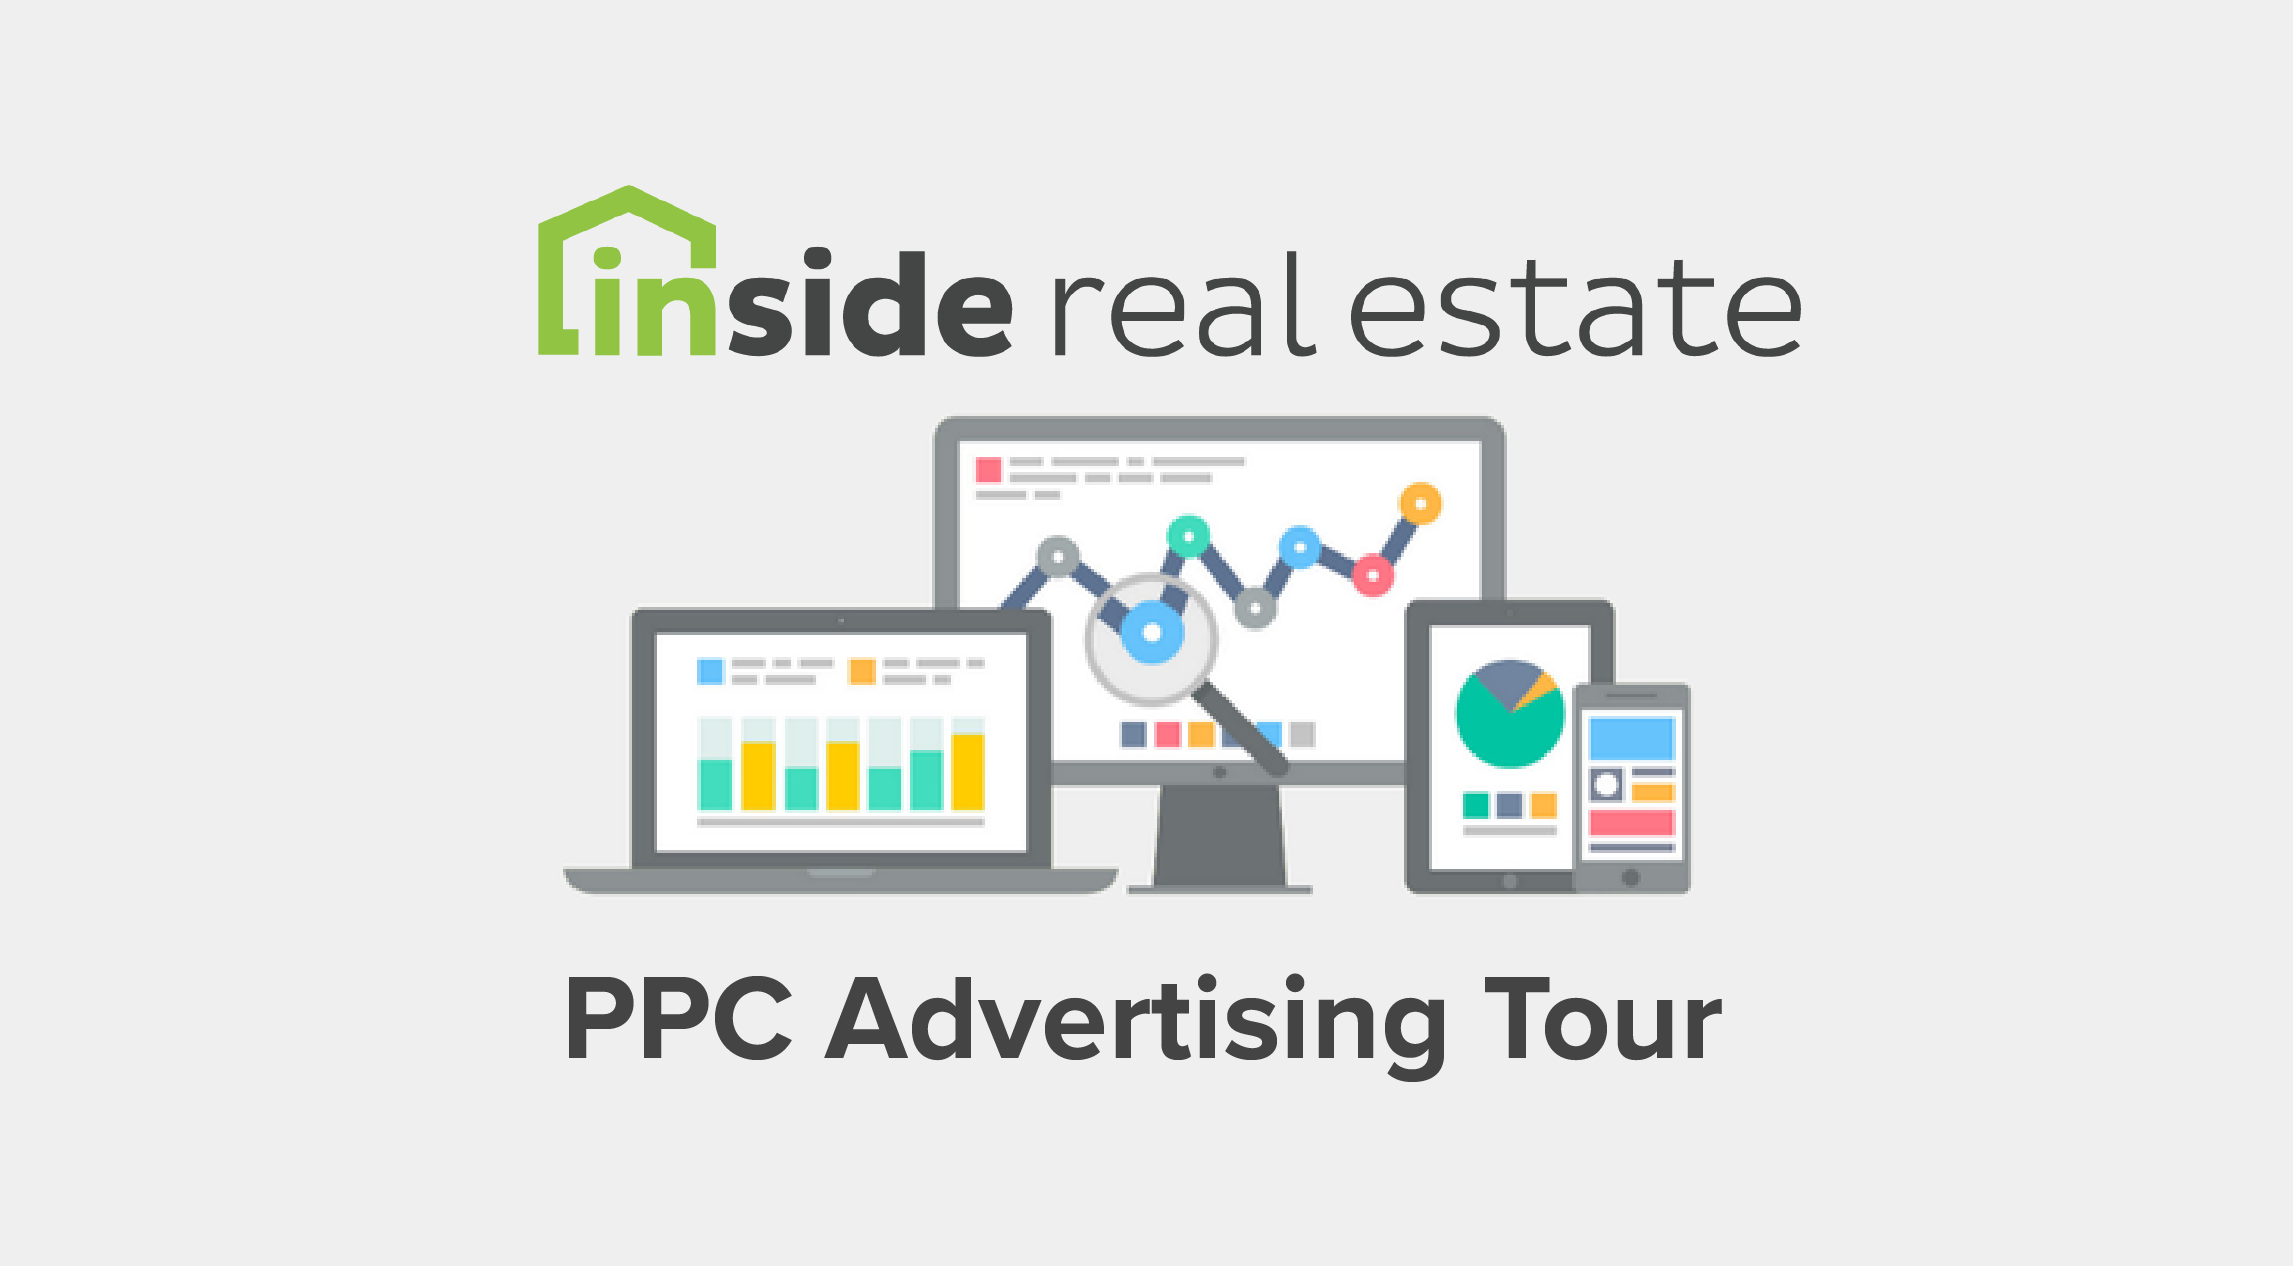 Inside Real Estate PPC Advertising Tour